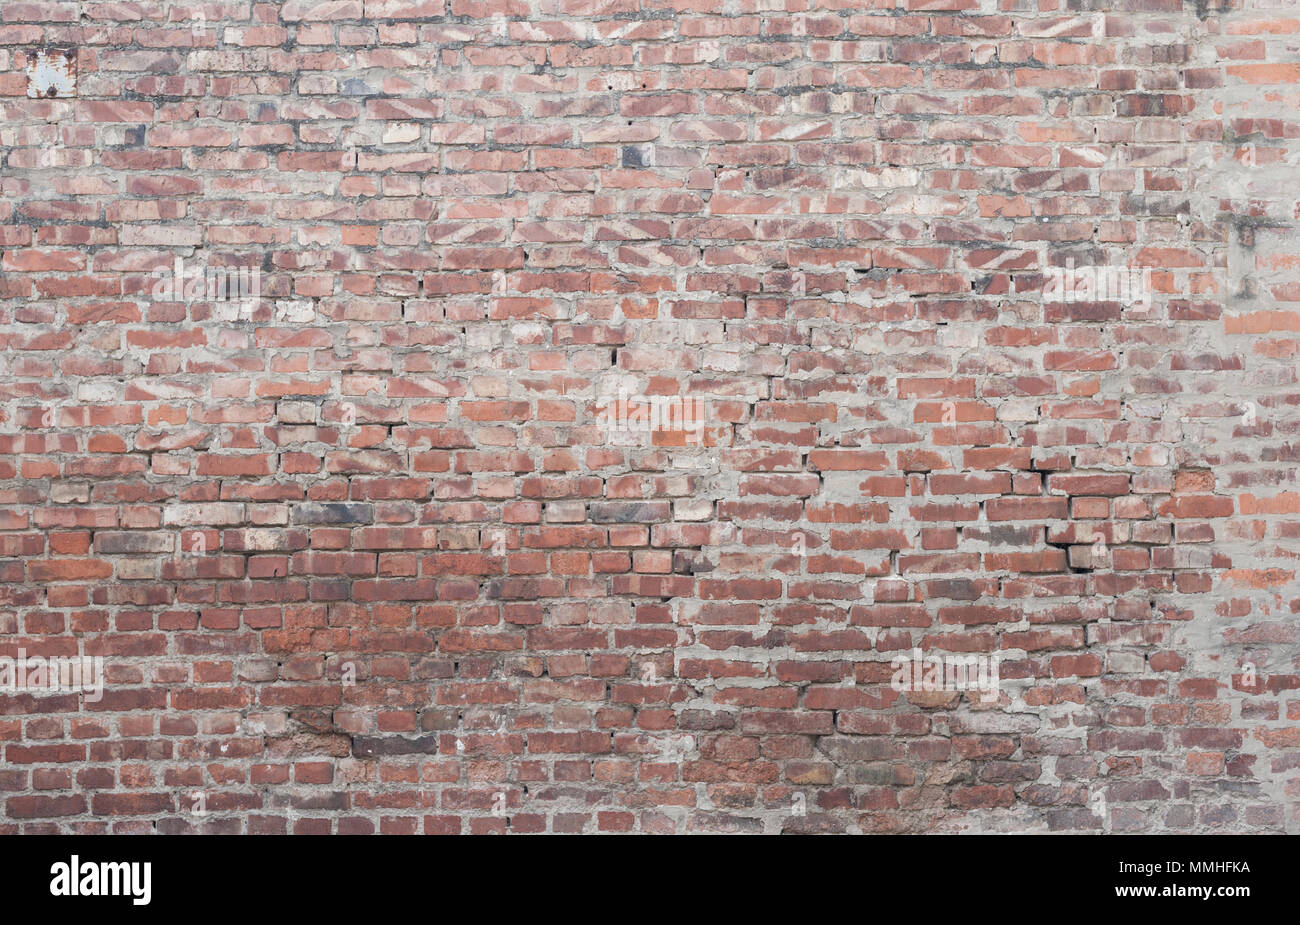 Brick Wall Texture Stock Photos Brick Wall Texture Stock